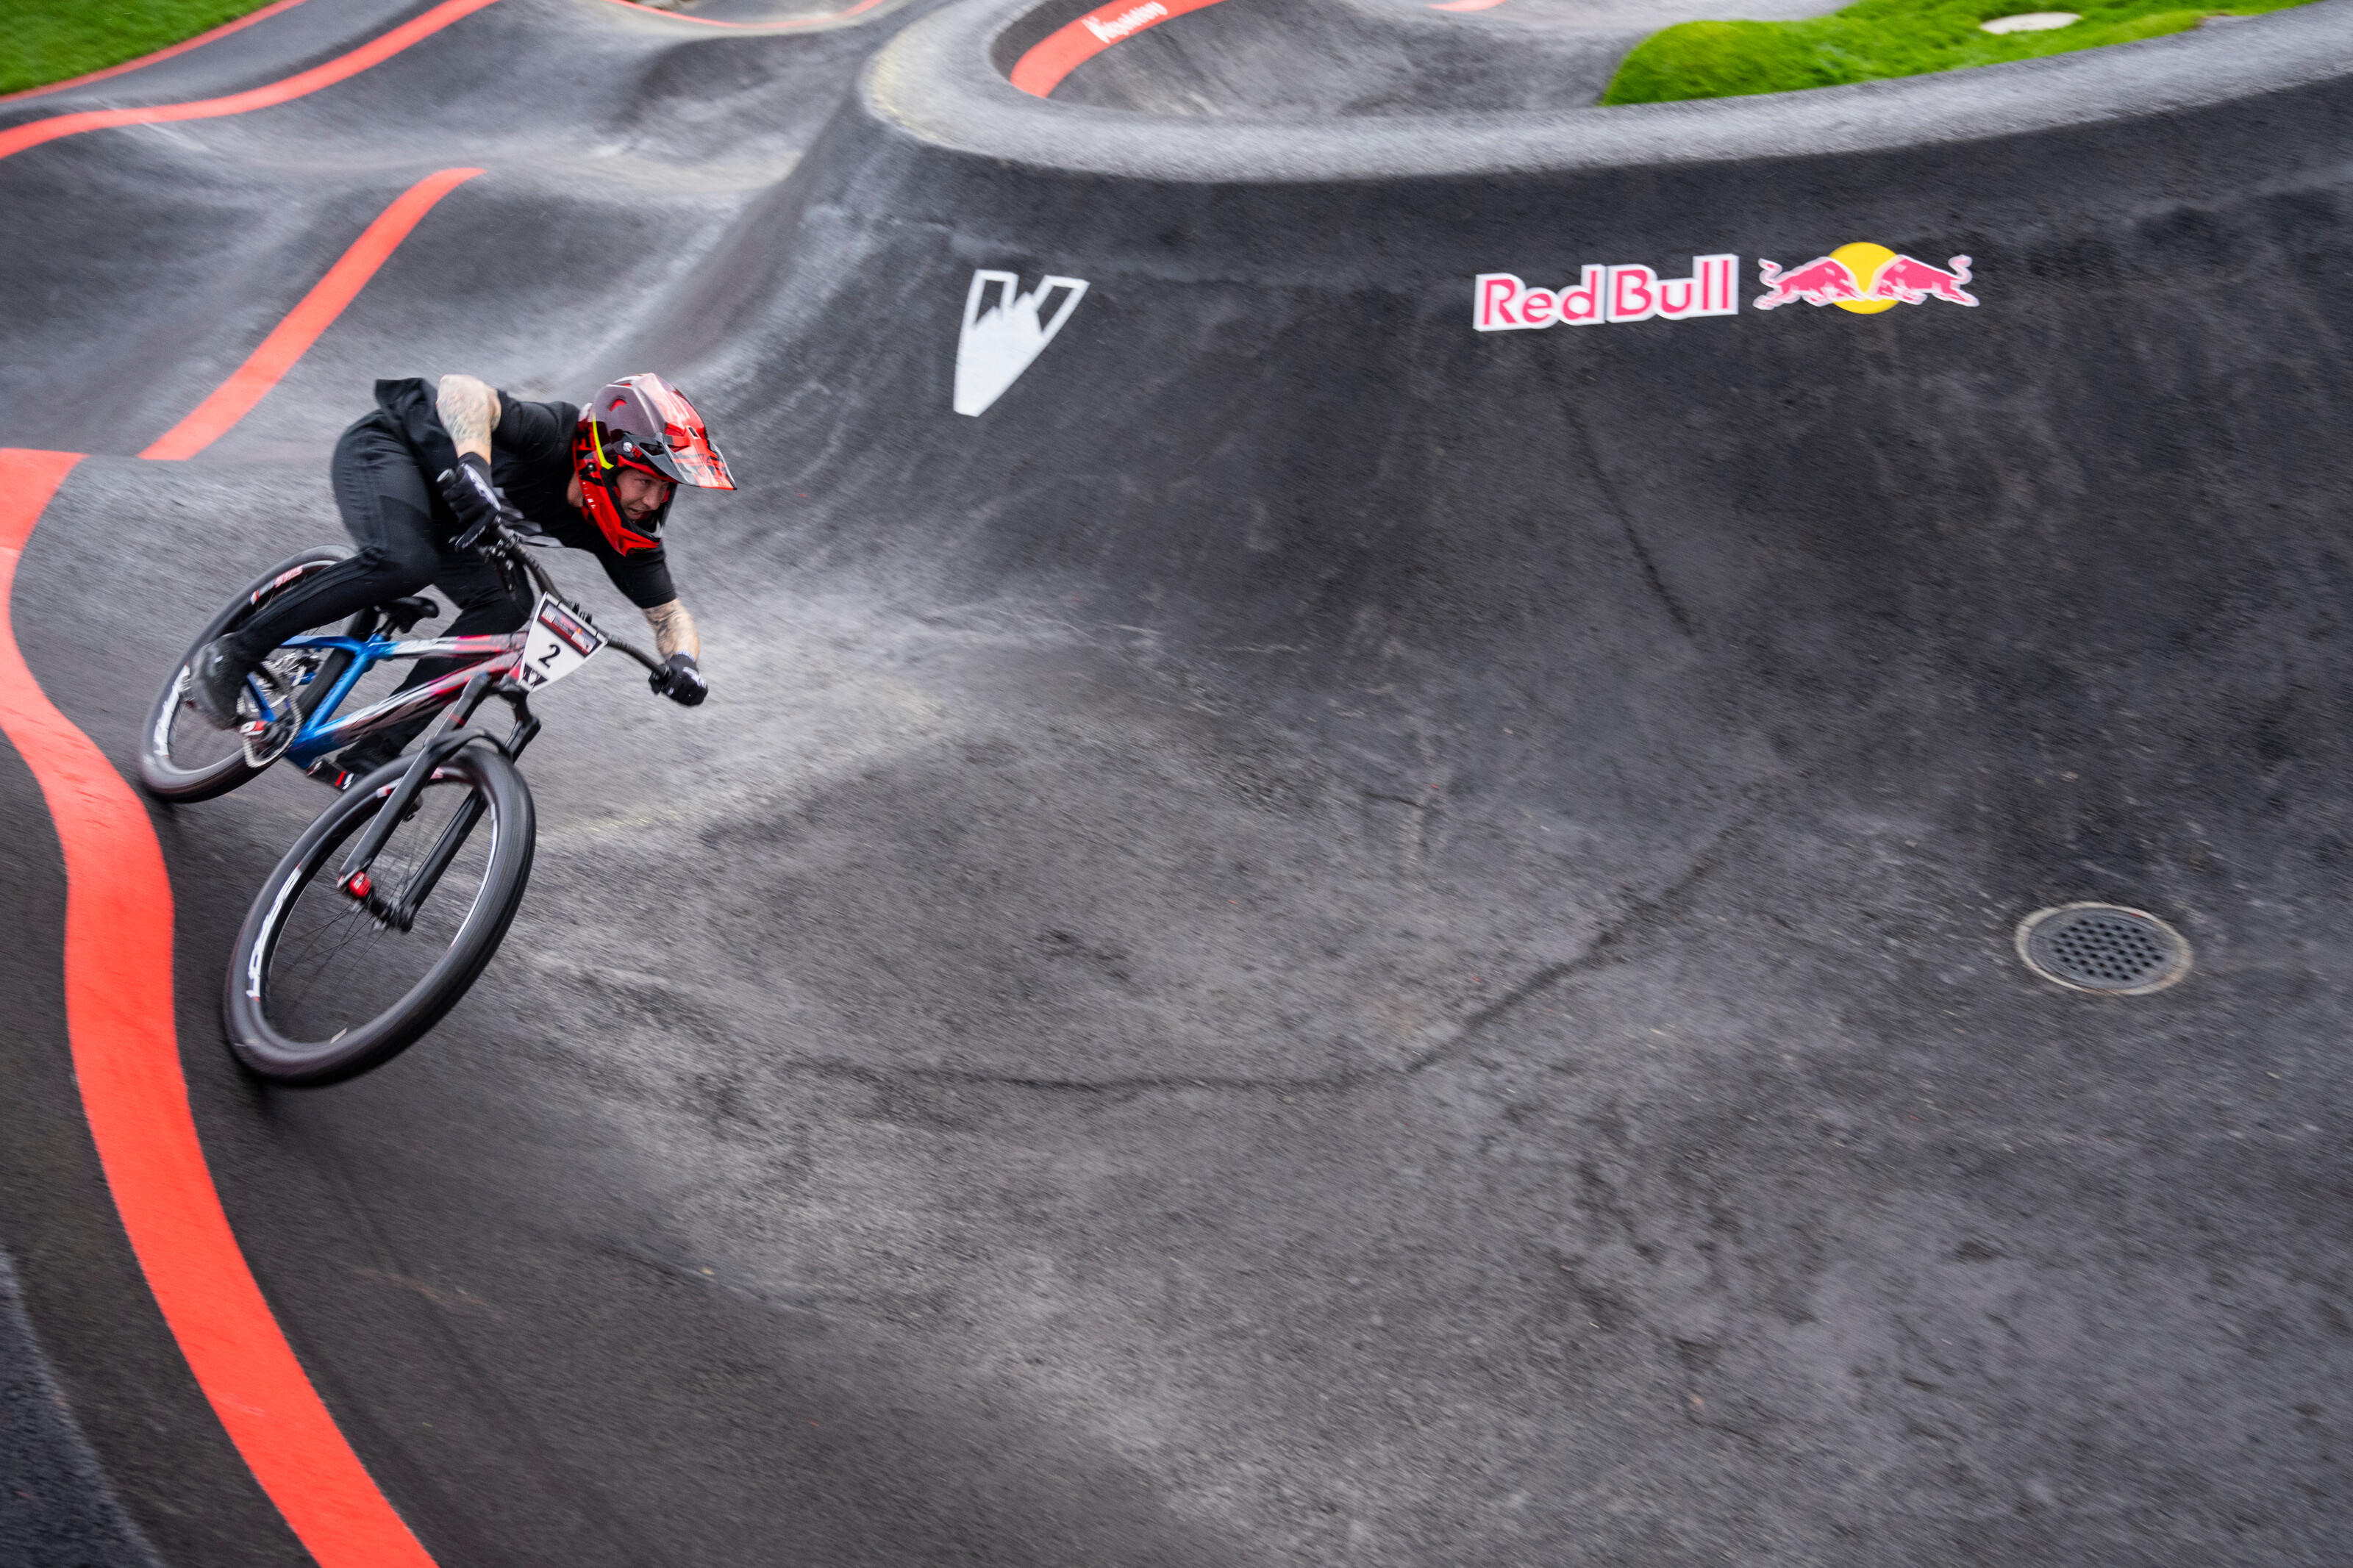 An epic double bill of bike in Leogang for Championships showdown in September.